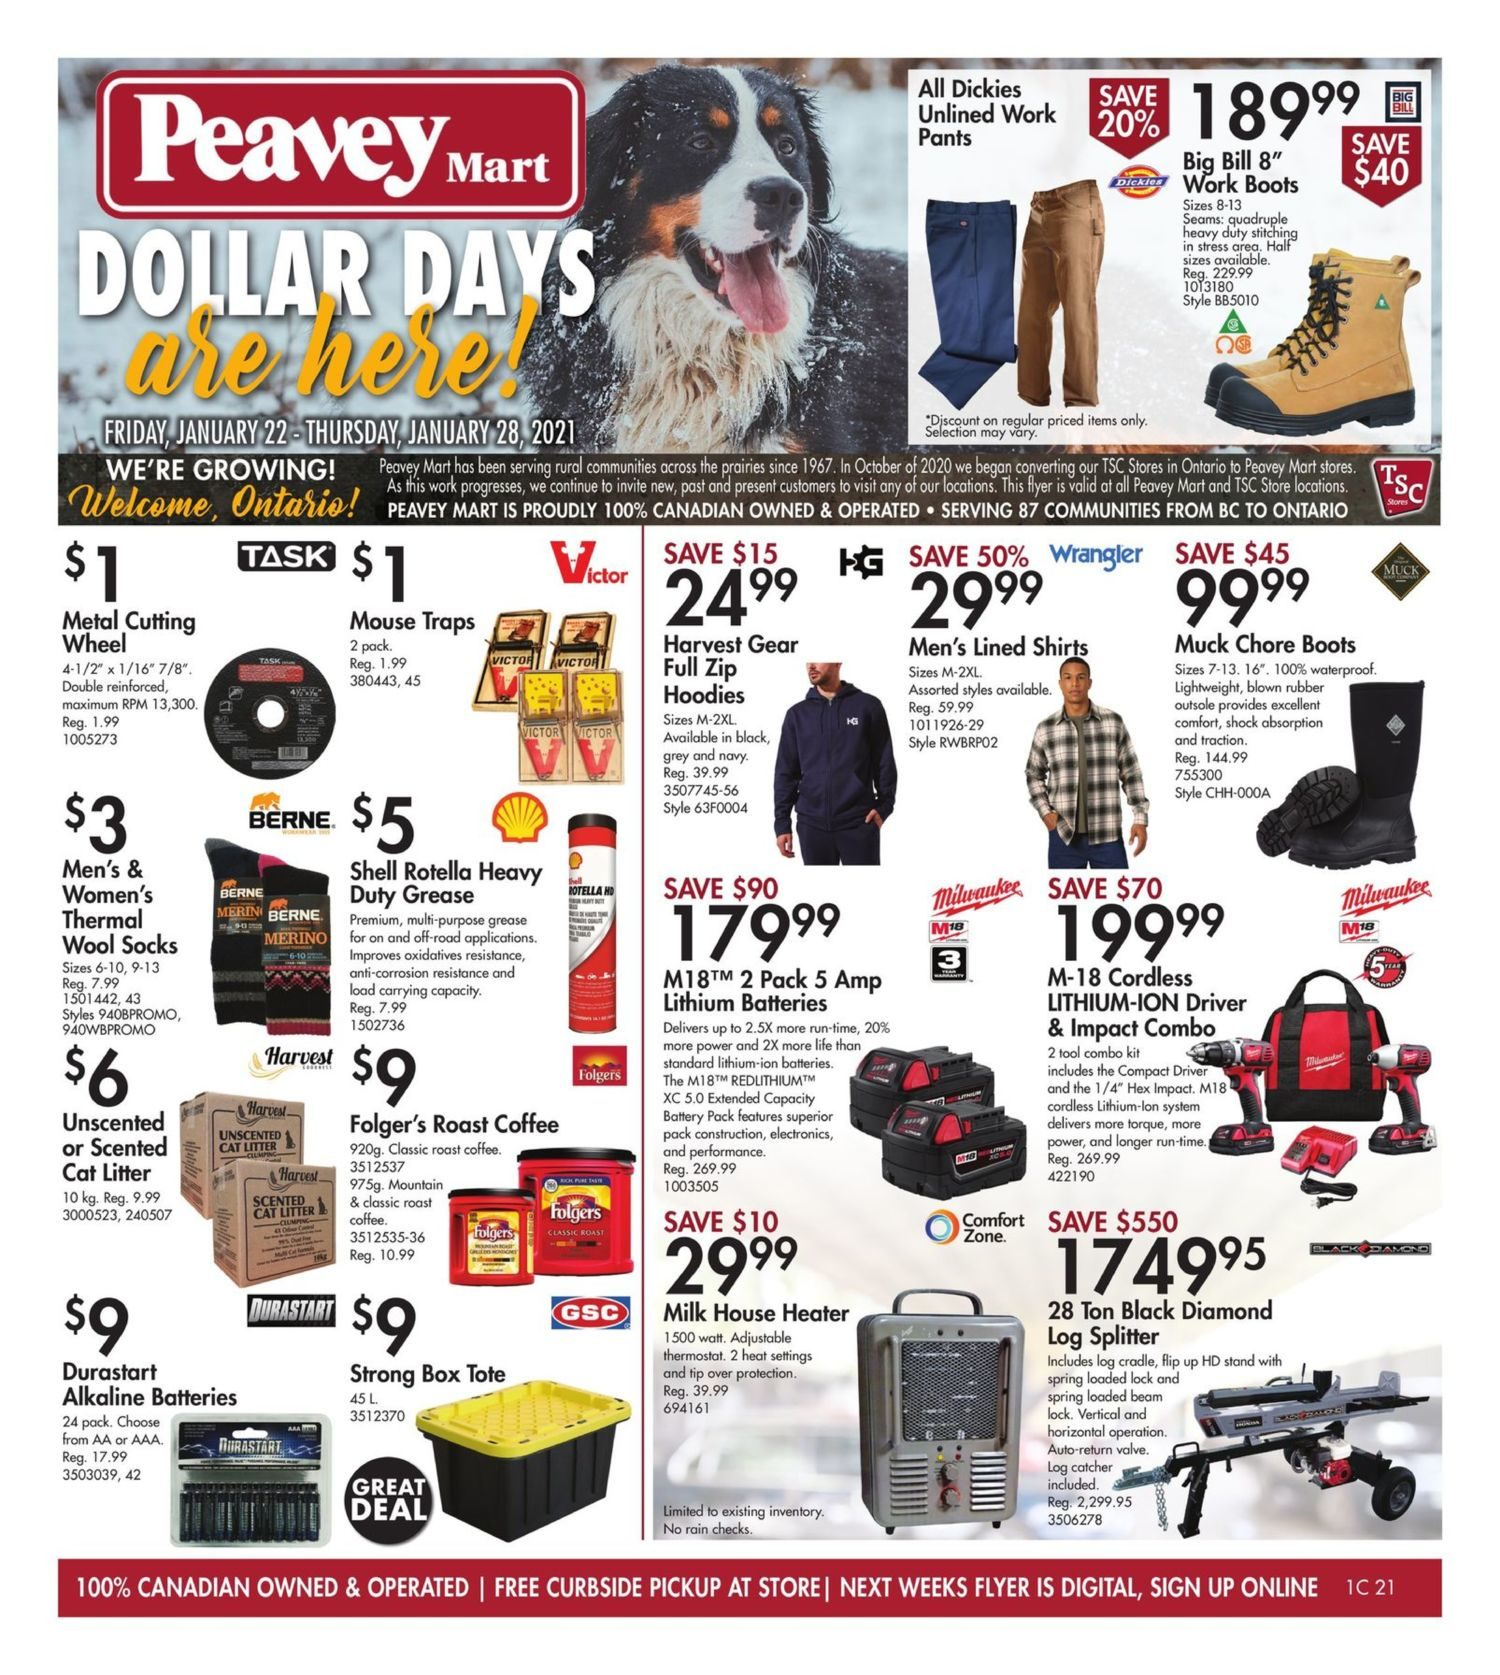 Peavey Mart - Weekly Deals - Dollar Days Are Here